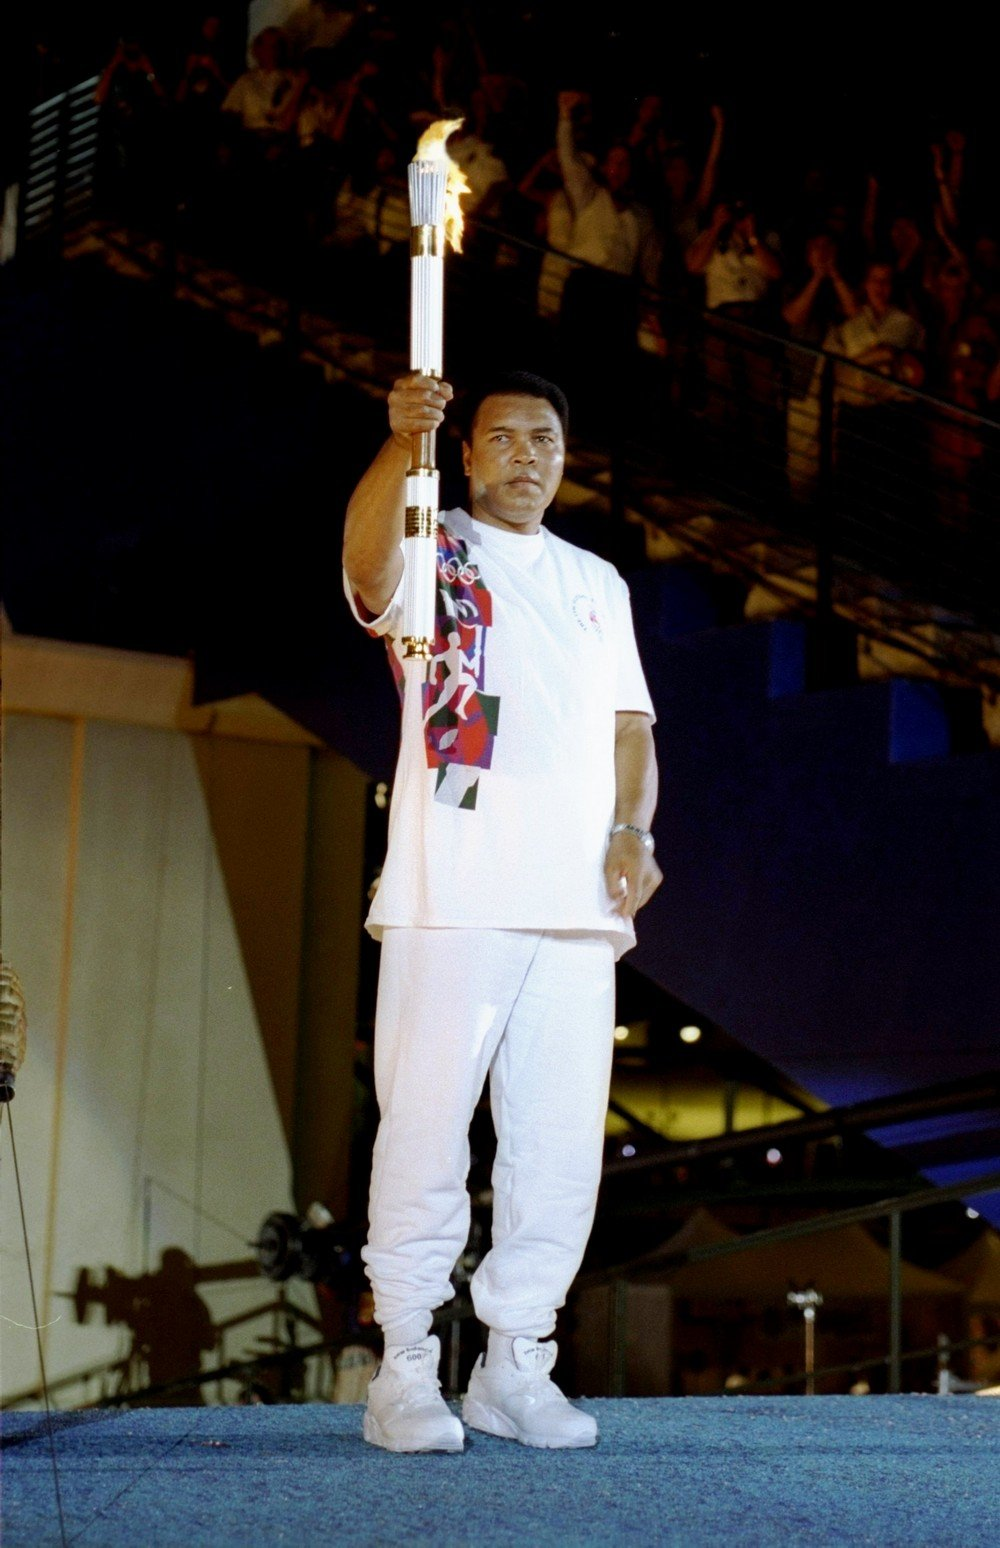 19 Jul 1996: Muhammad Ali holds the torch before lighting the Olympic Flame during the Opening Ceremony of the 1996 Centennial Olympic Games in Atlanta, Georgia. Mandatory Credit: Michael Cooper /